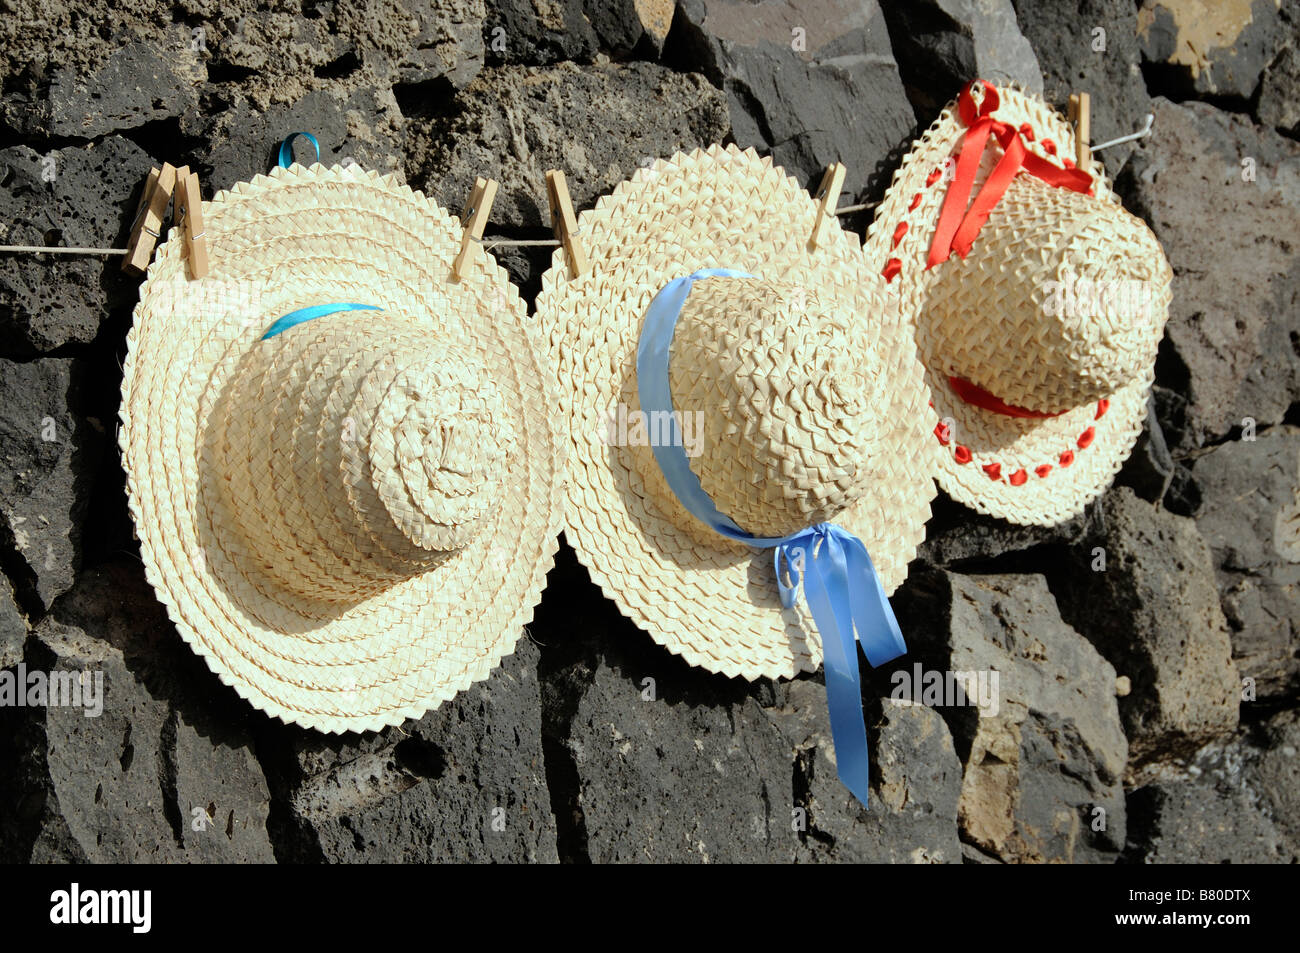 Straw hats handmade in the Canary Islands pegged on a line and on sale as souvenirs for the tourist trade. - Stock Image